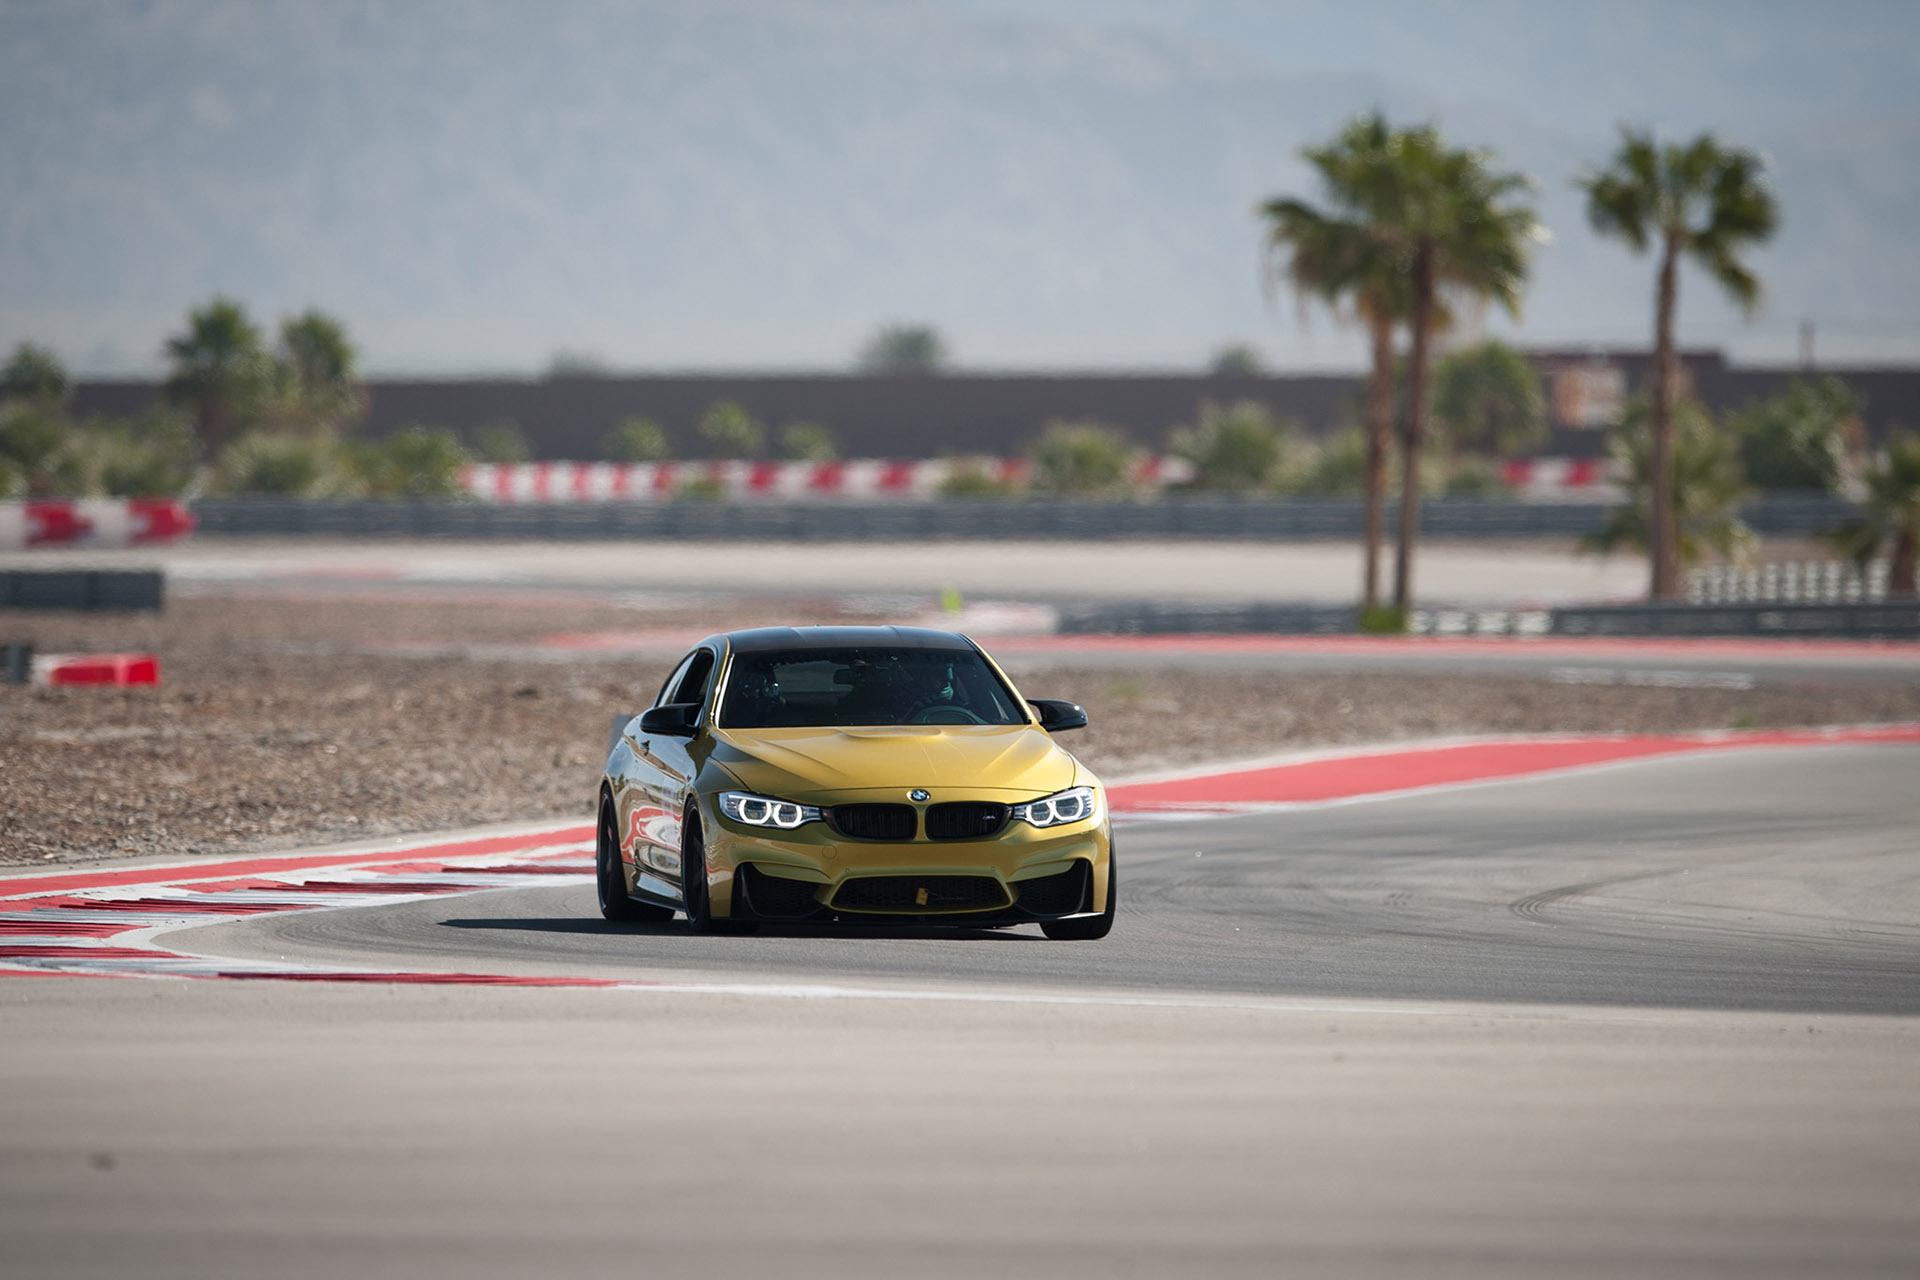 F82 F84 Gold Bmw M4 European Car Magazine Tuner Gp Luke Munnell